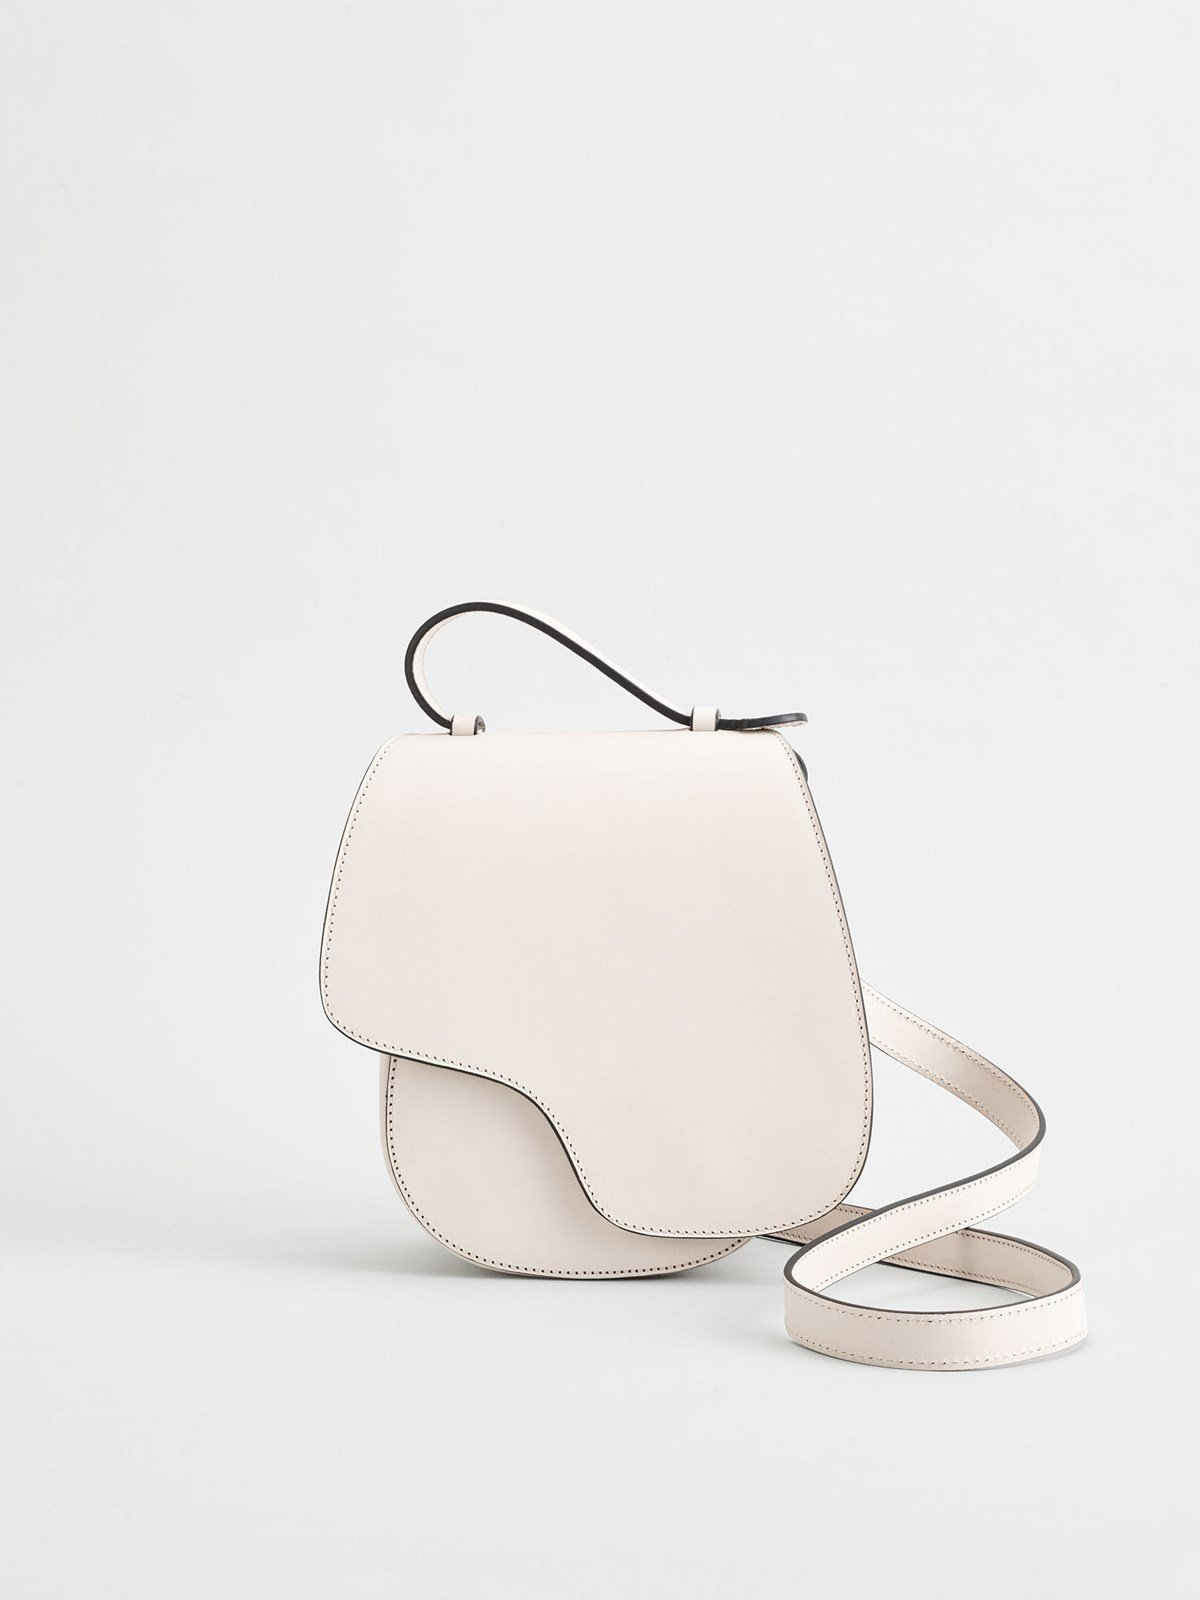 Carrara Ice White Crossbody bag